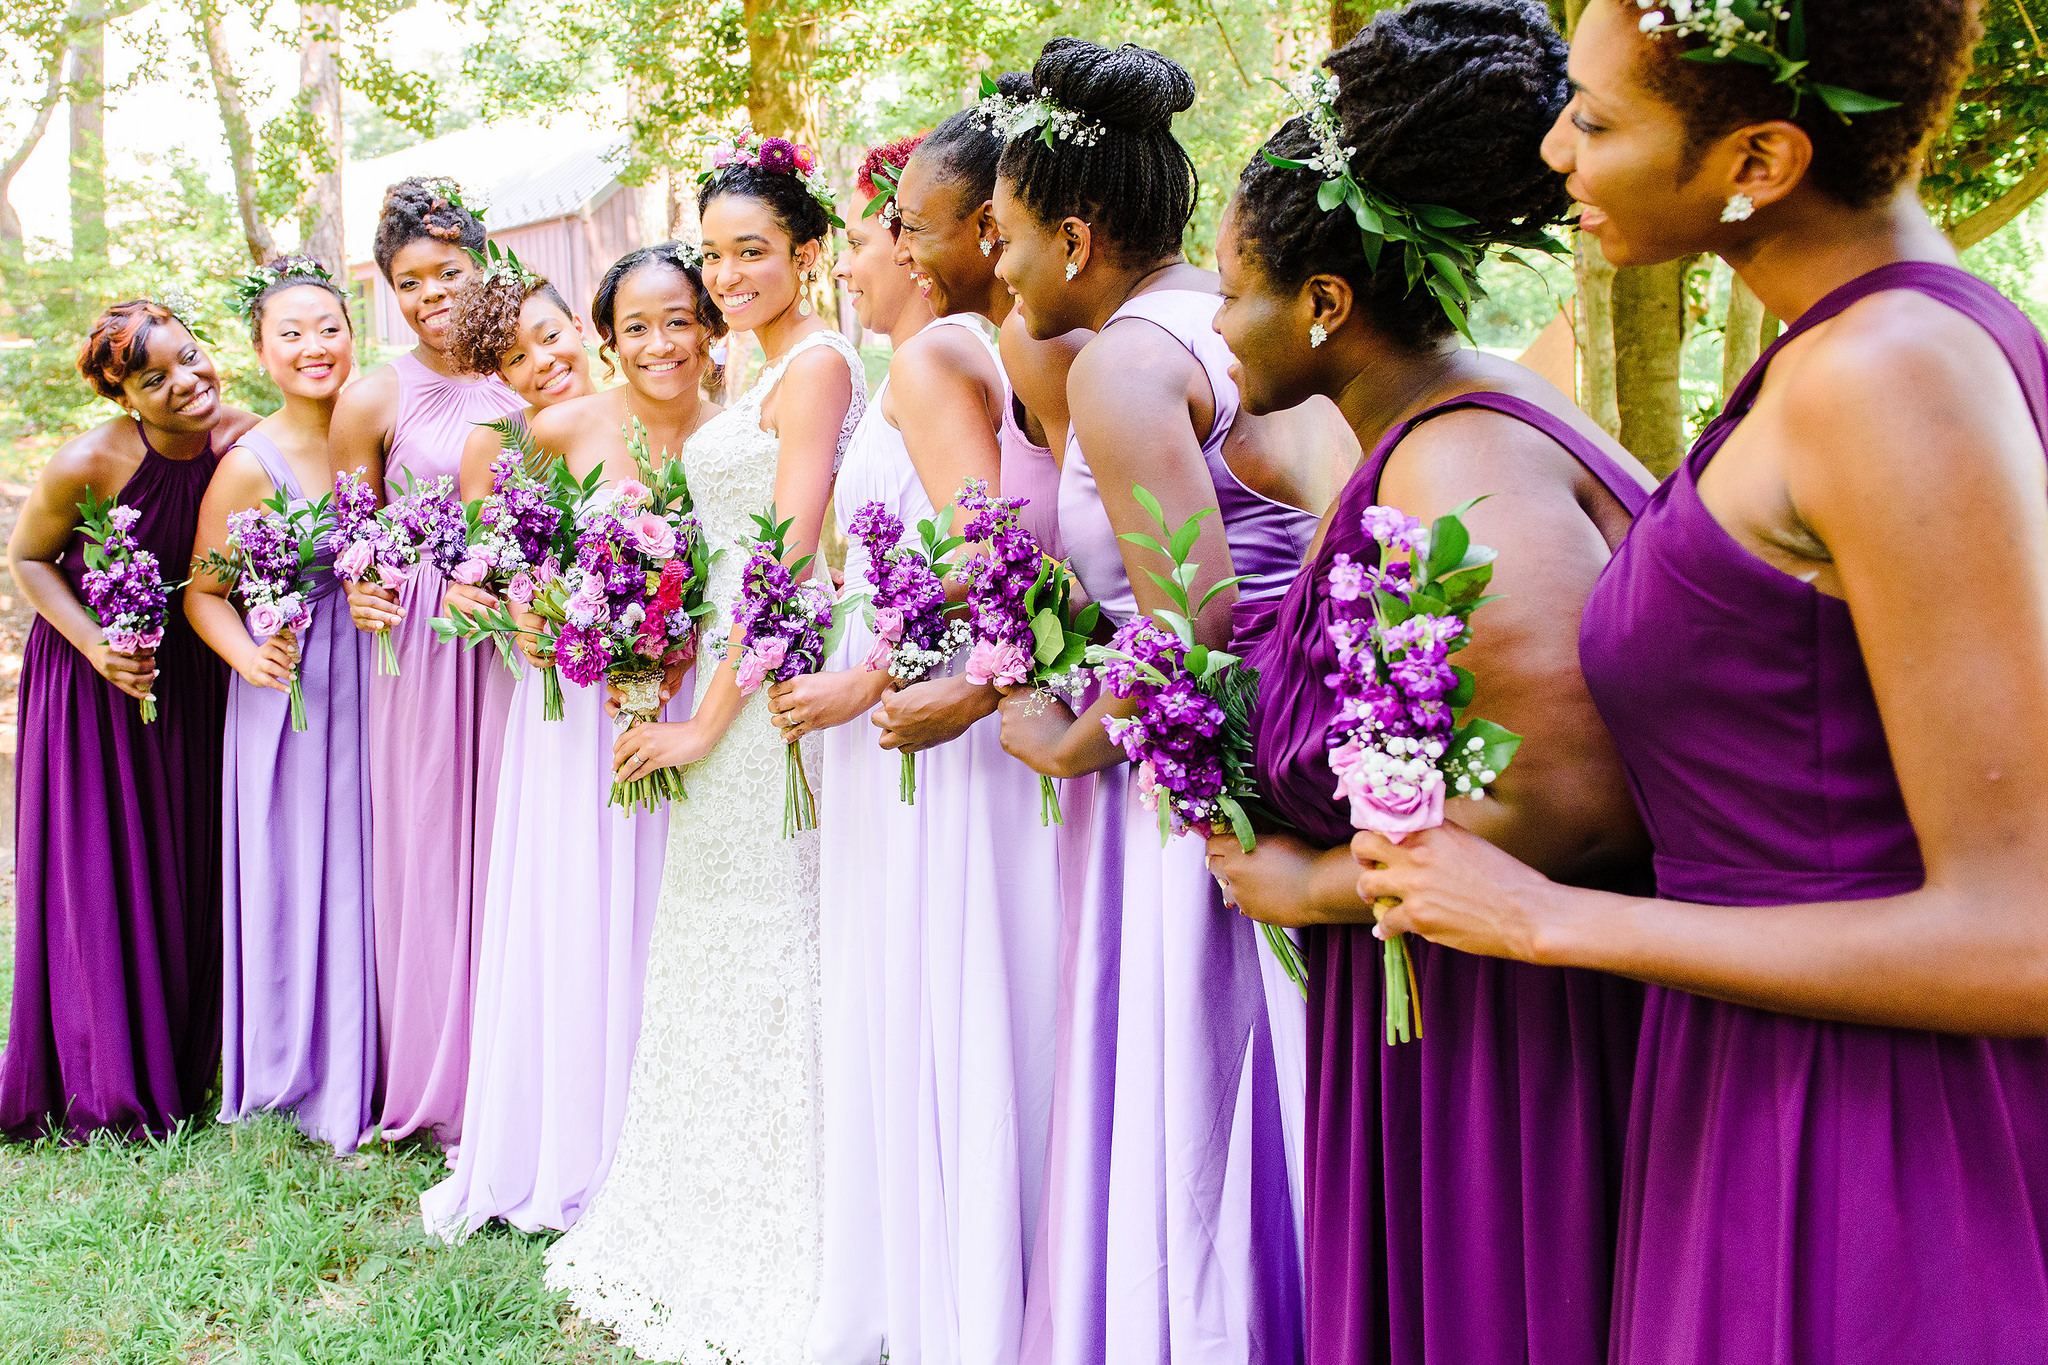 Purple, bridal party, wedding, bridesmaids, ombre, dresses, mix and match